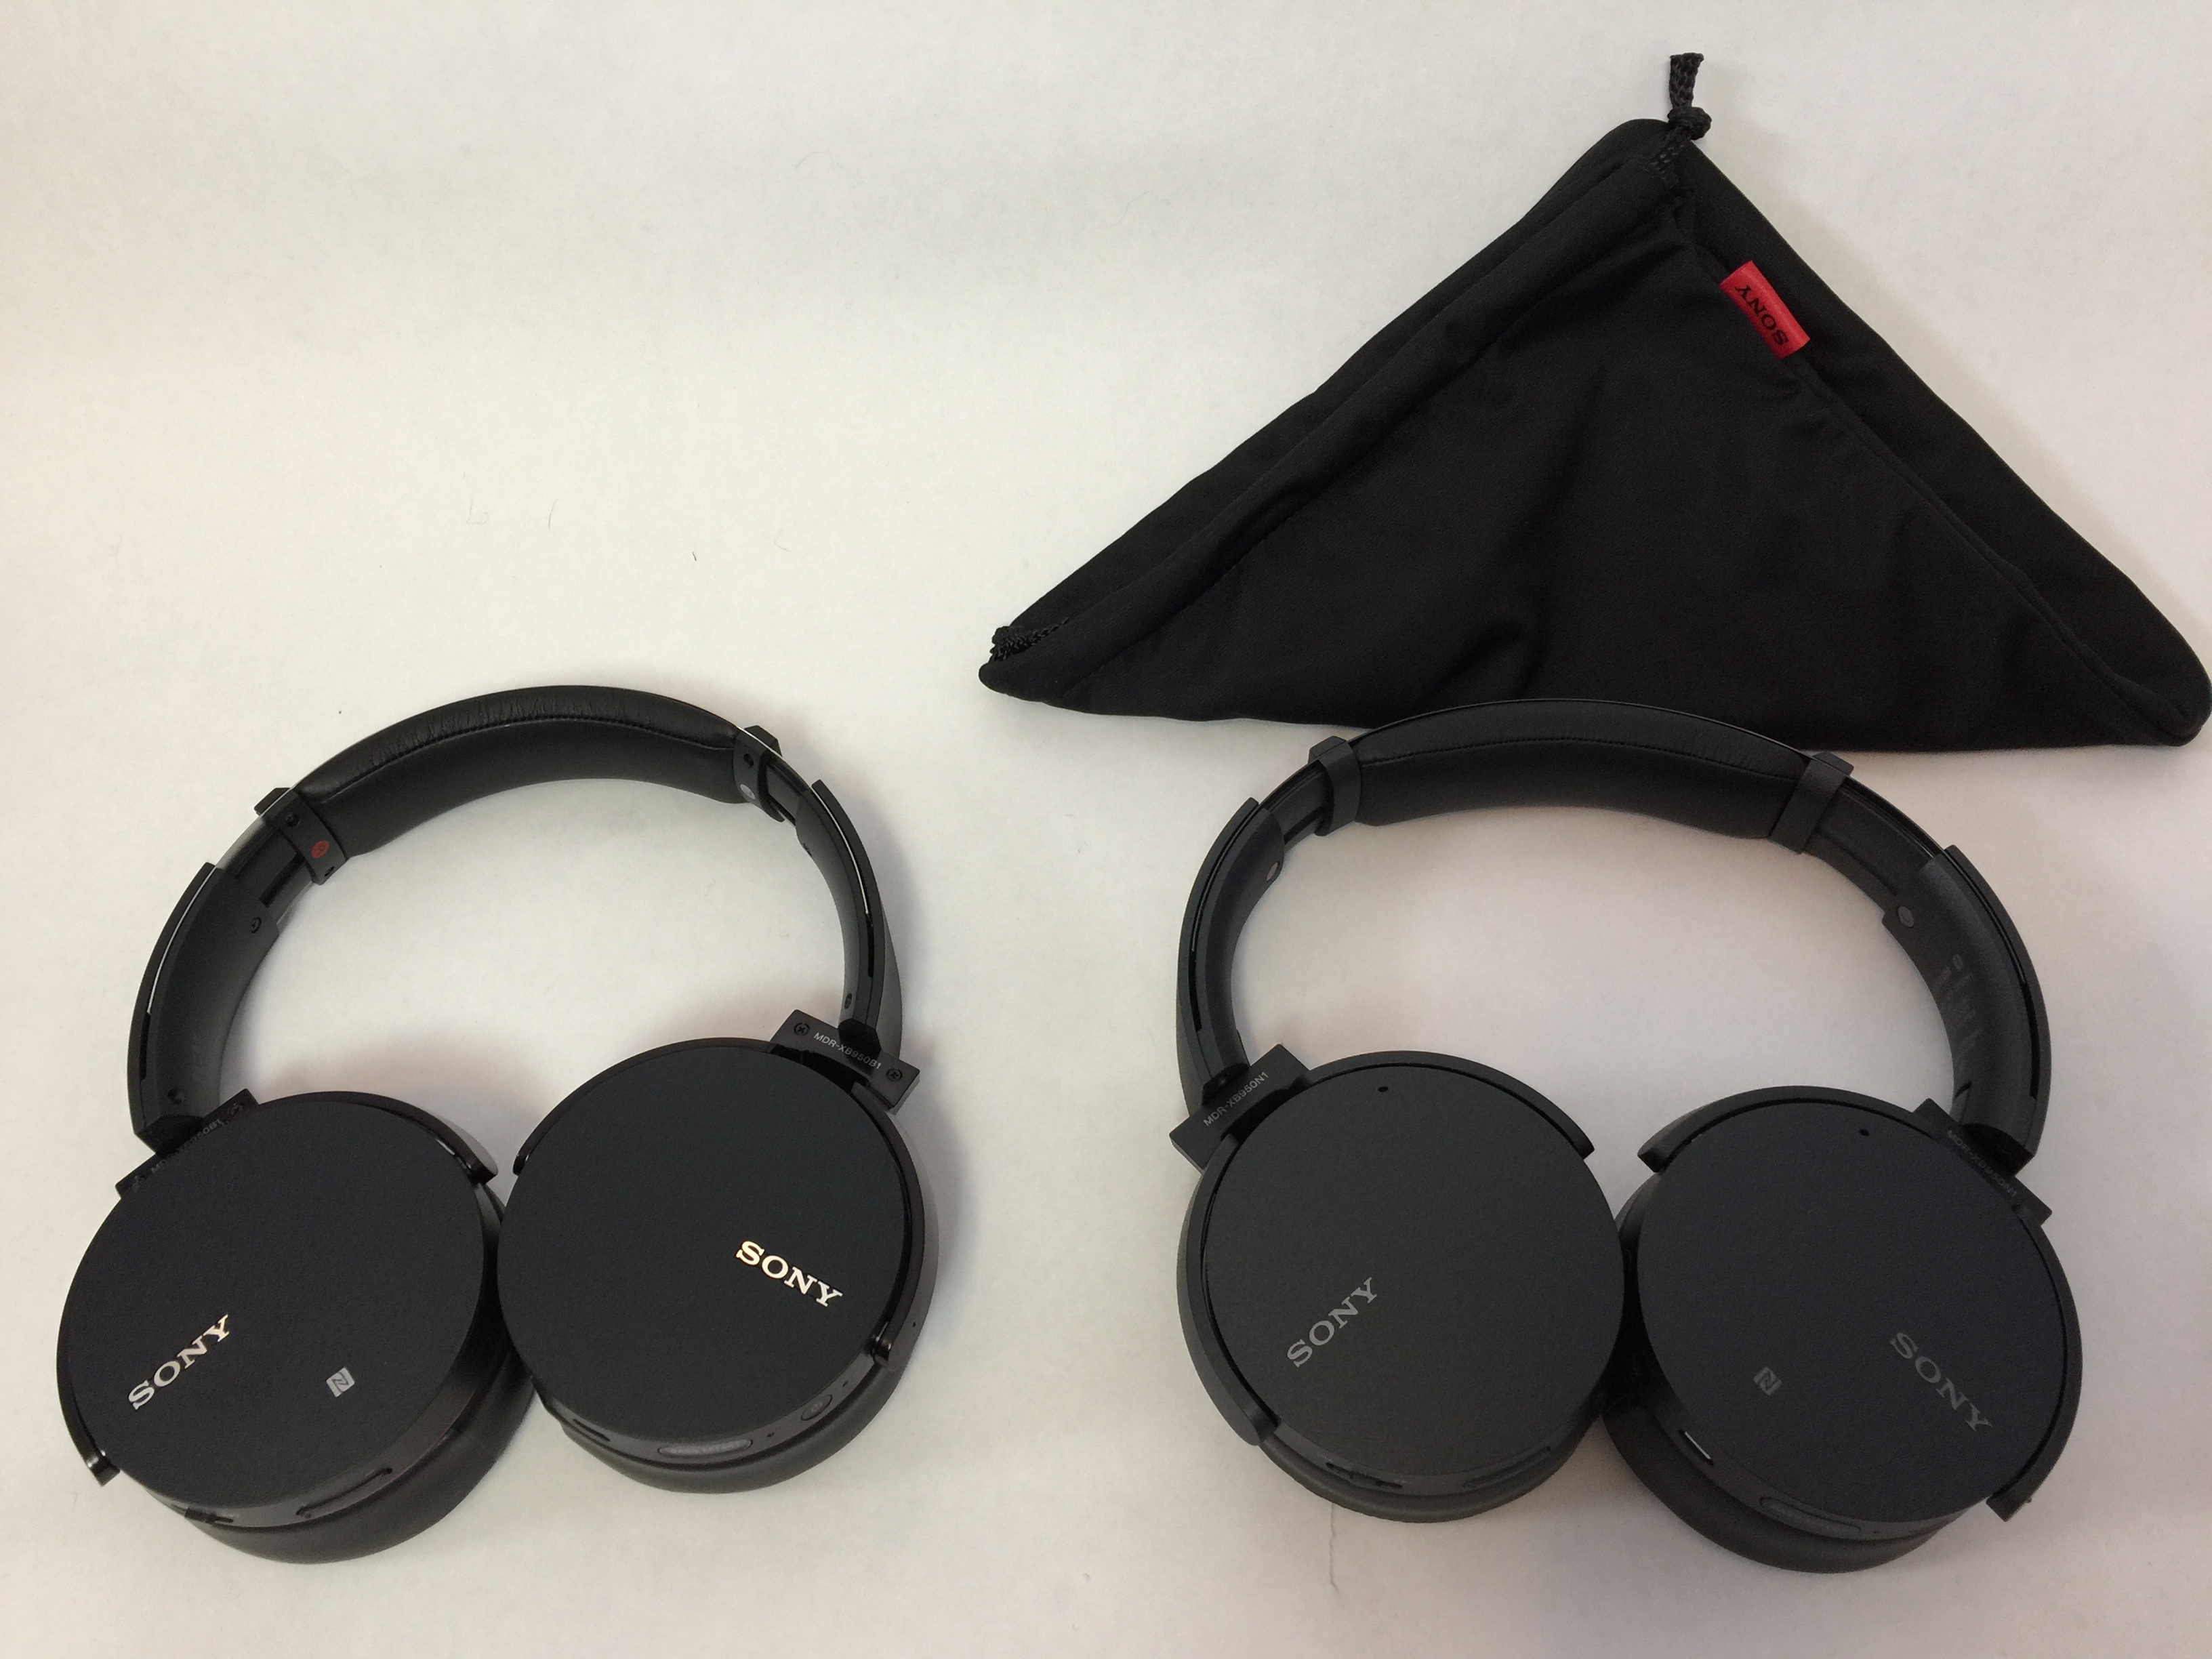 Sony MDR-XB950B1 and MDR-XB950N1 headphones review | Best